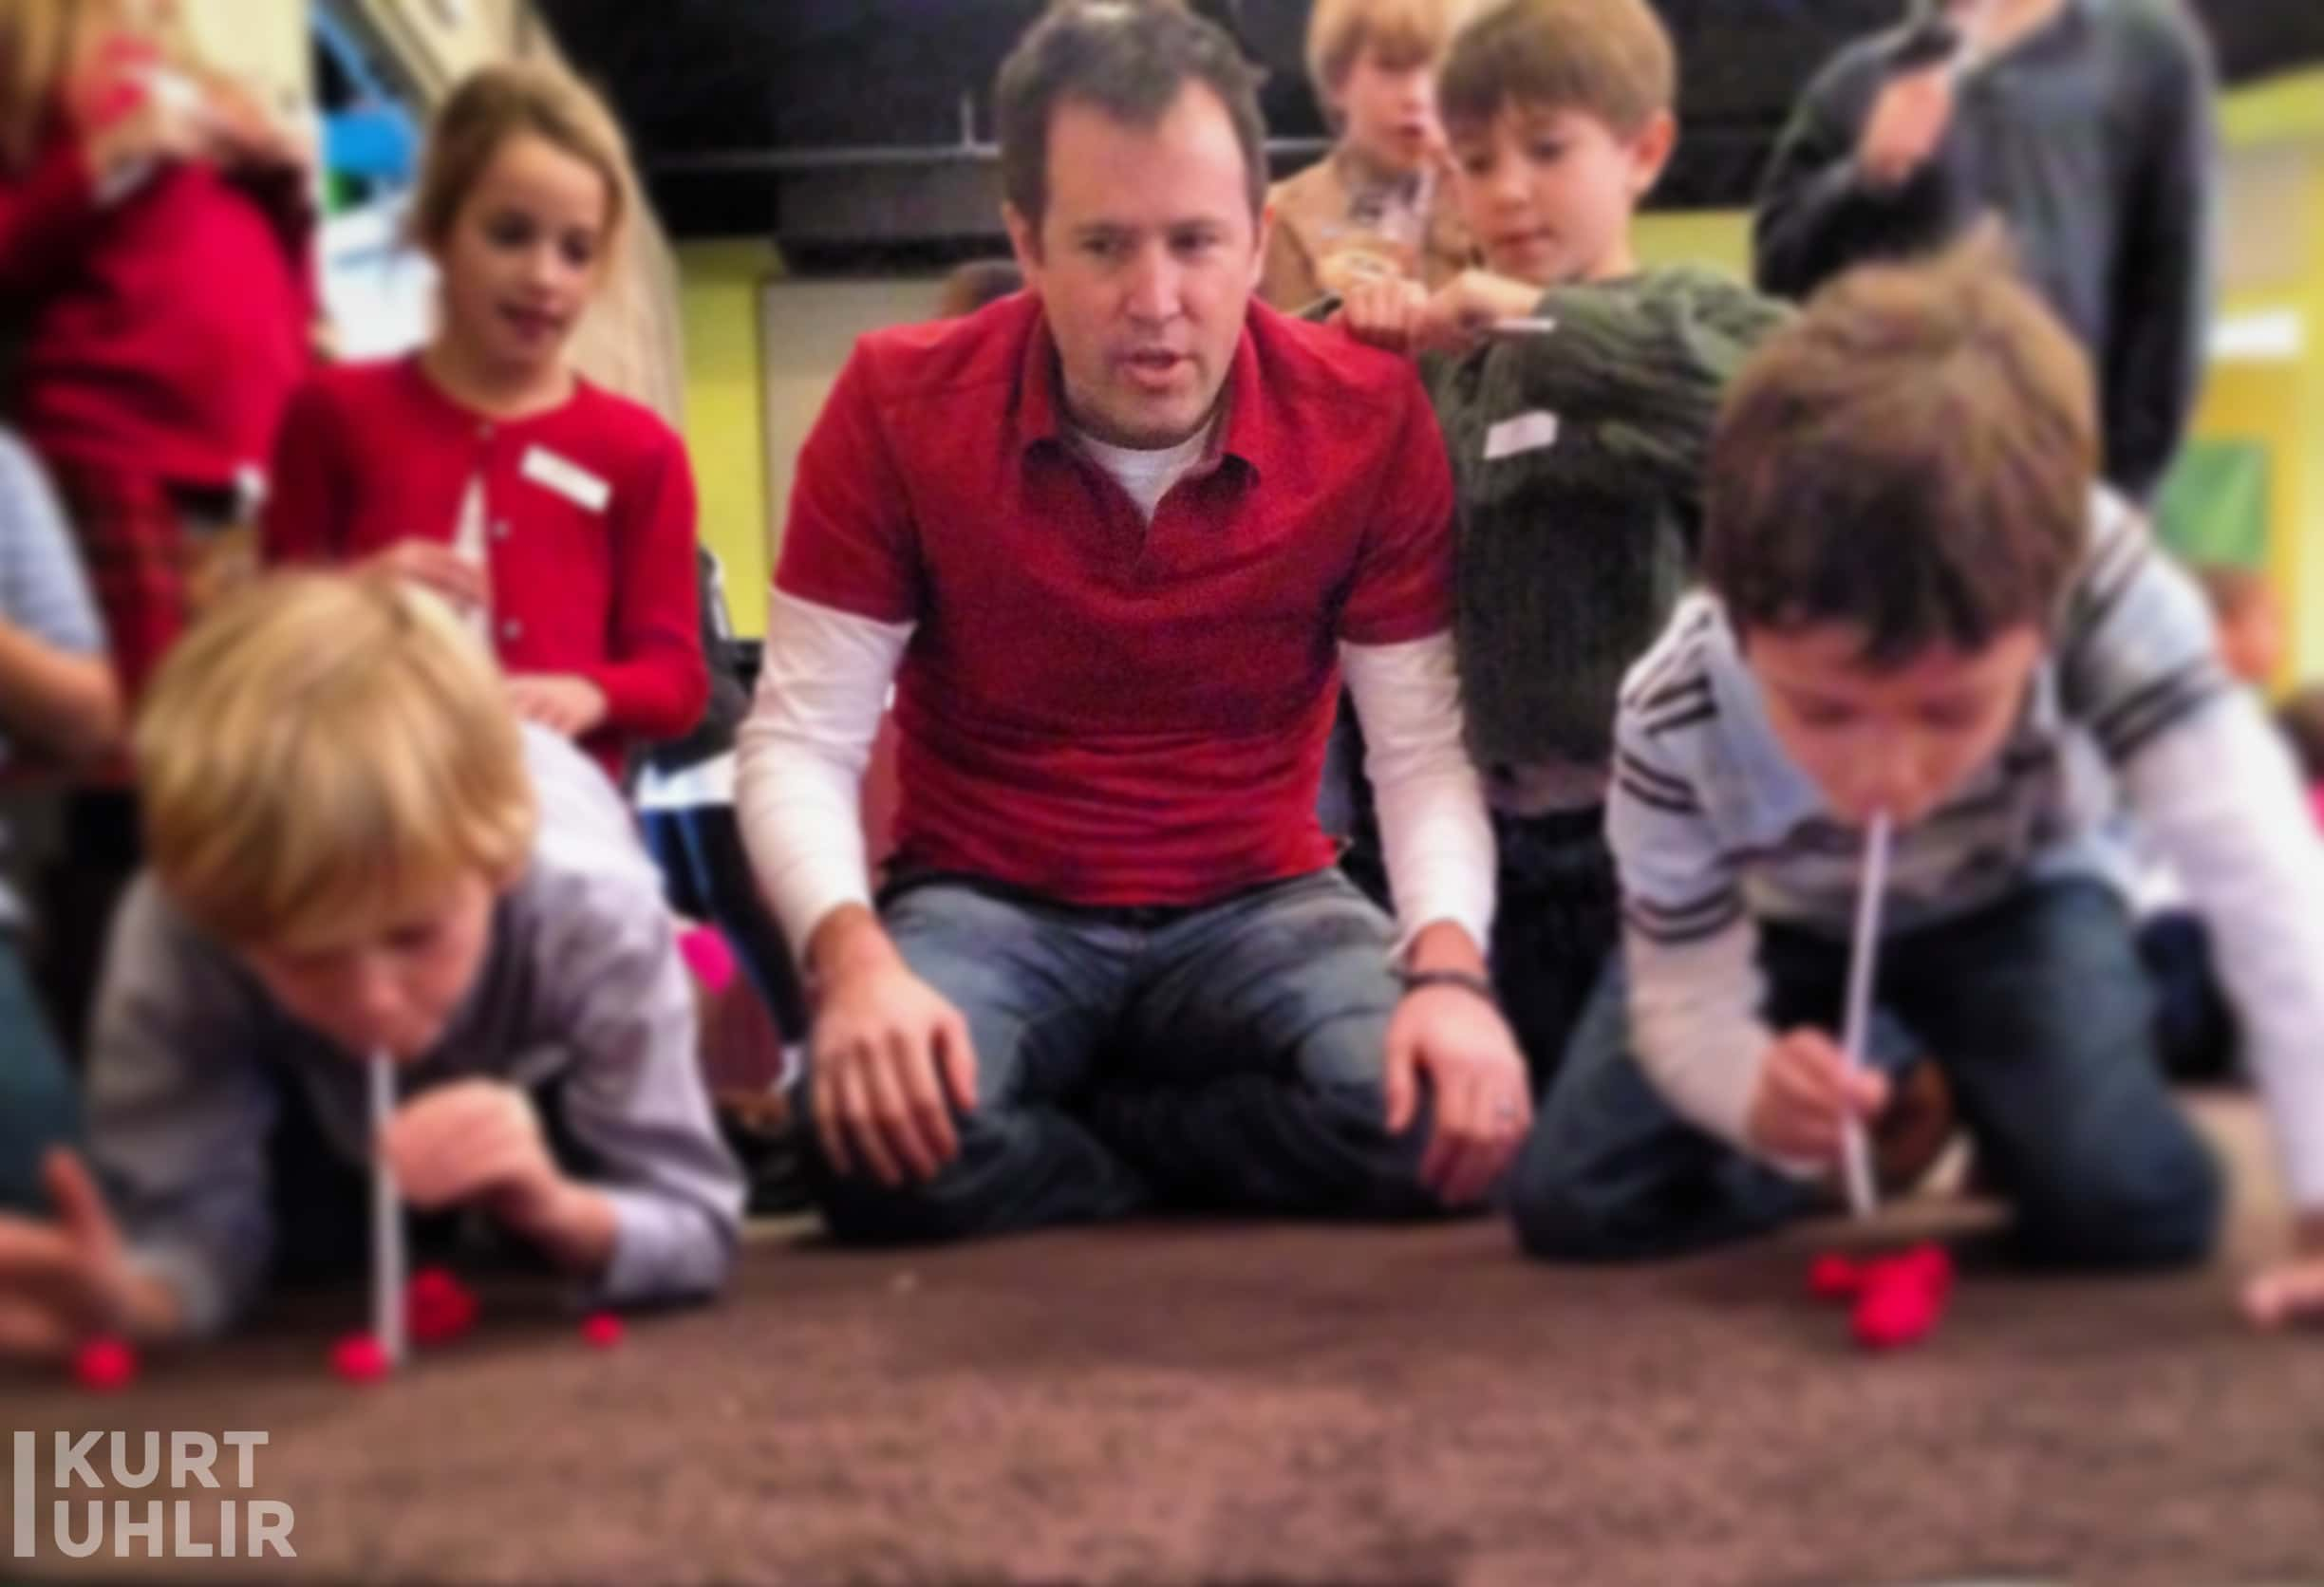 Serving with children at church - Kurt Uhlir